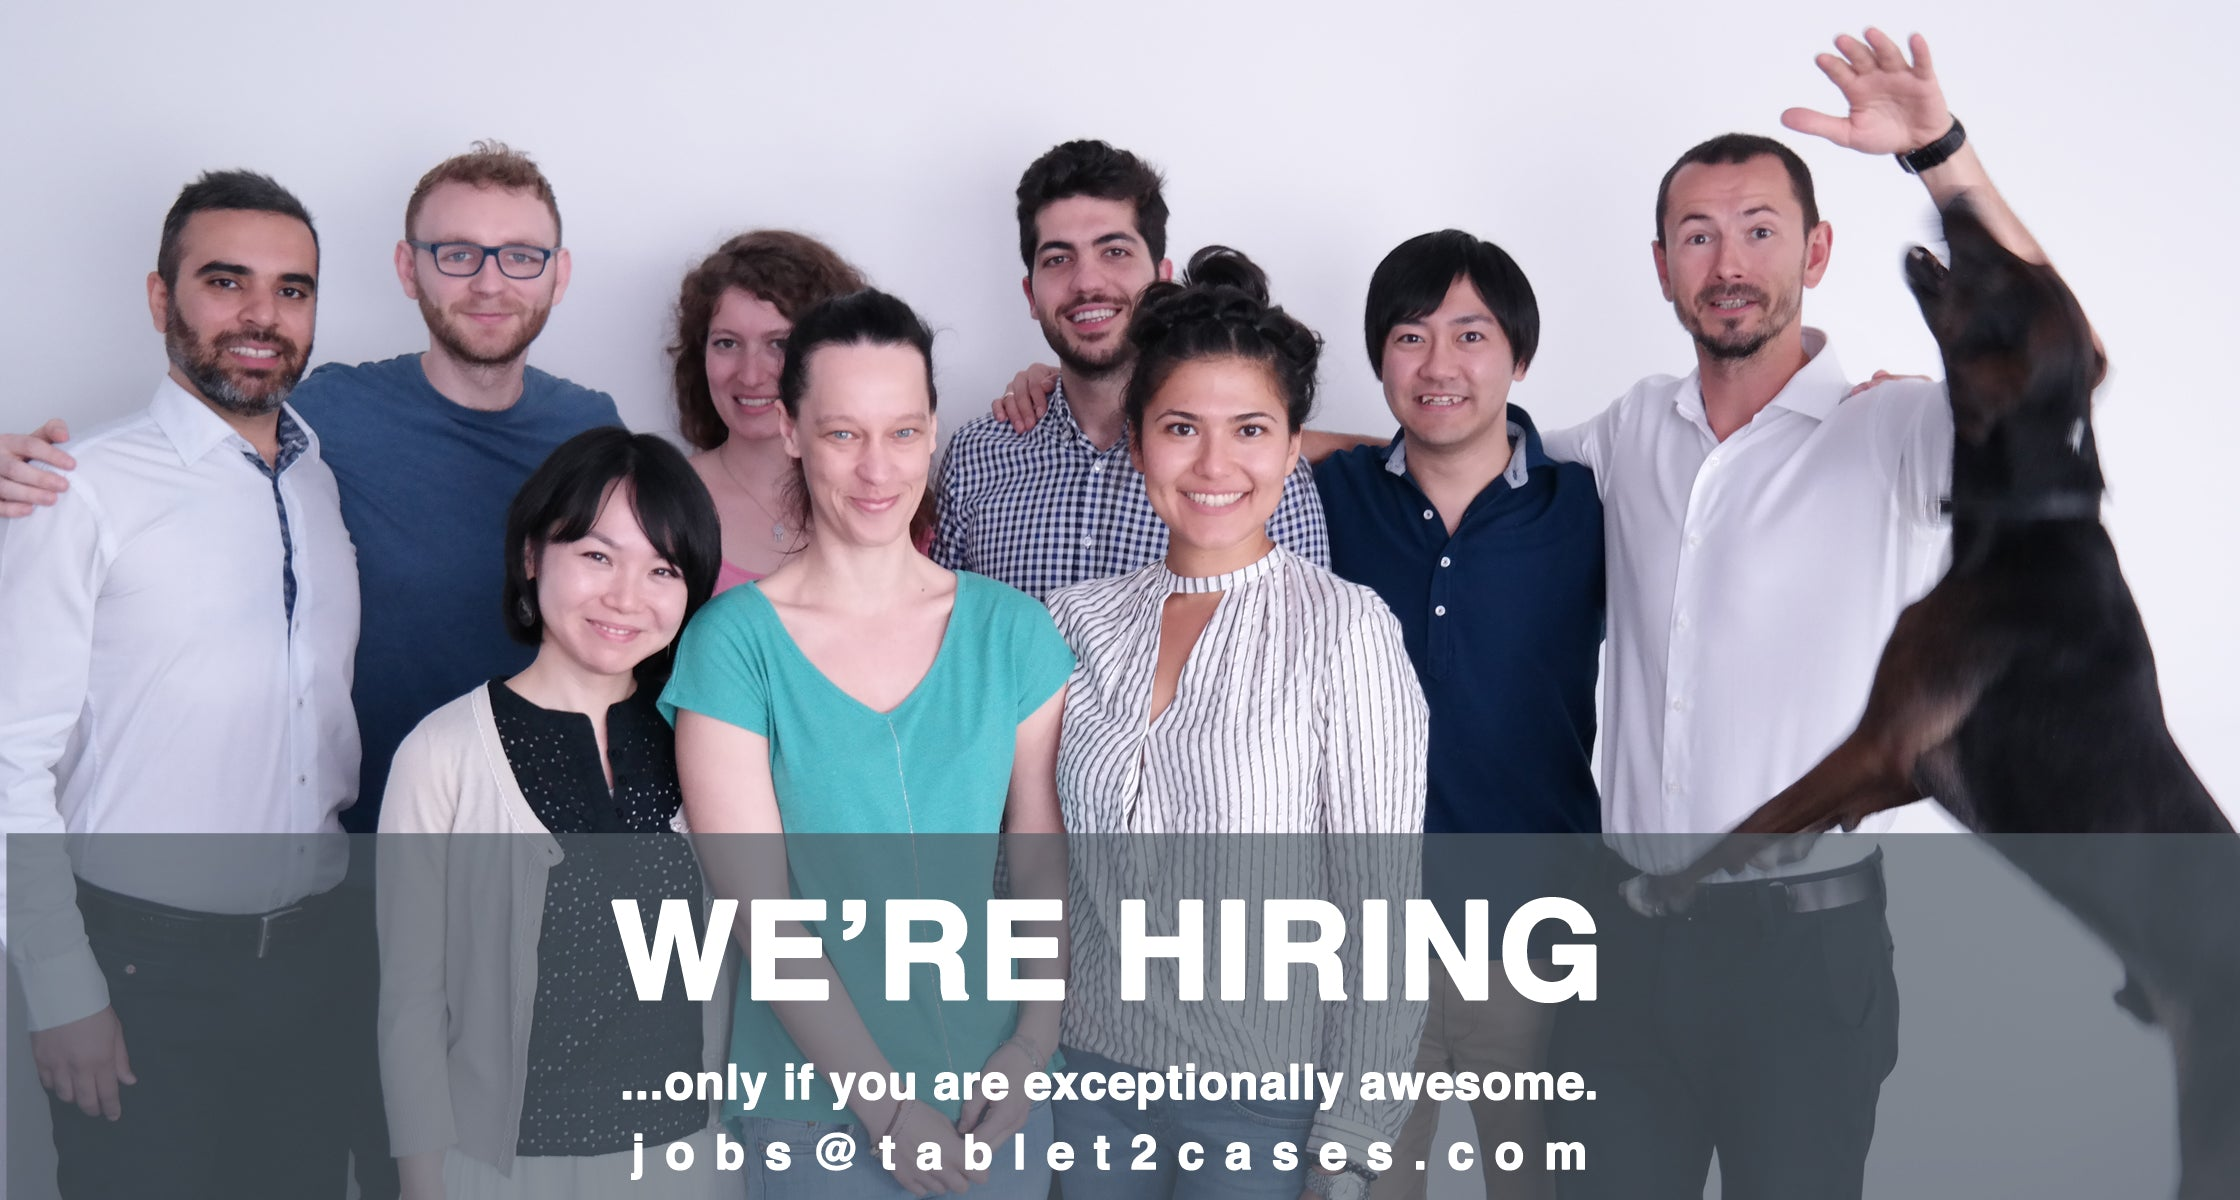 Tablet2Cases is hiring a Project Manager